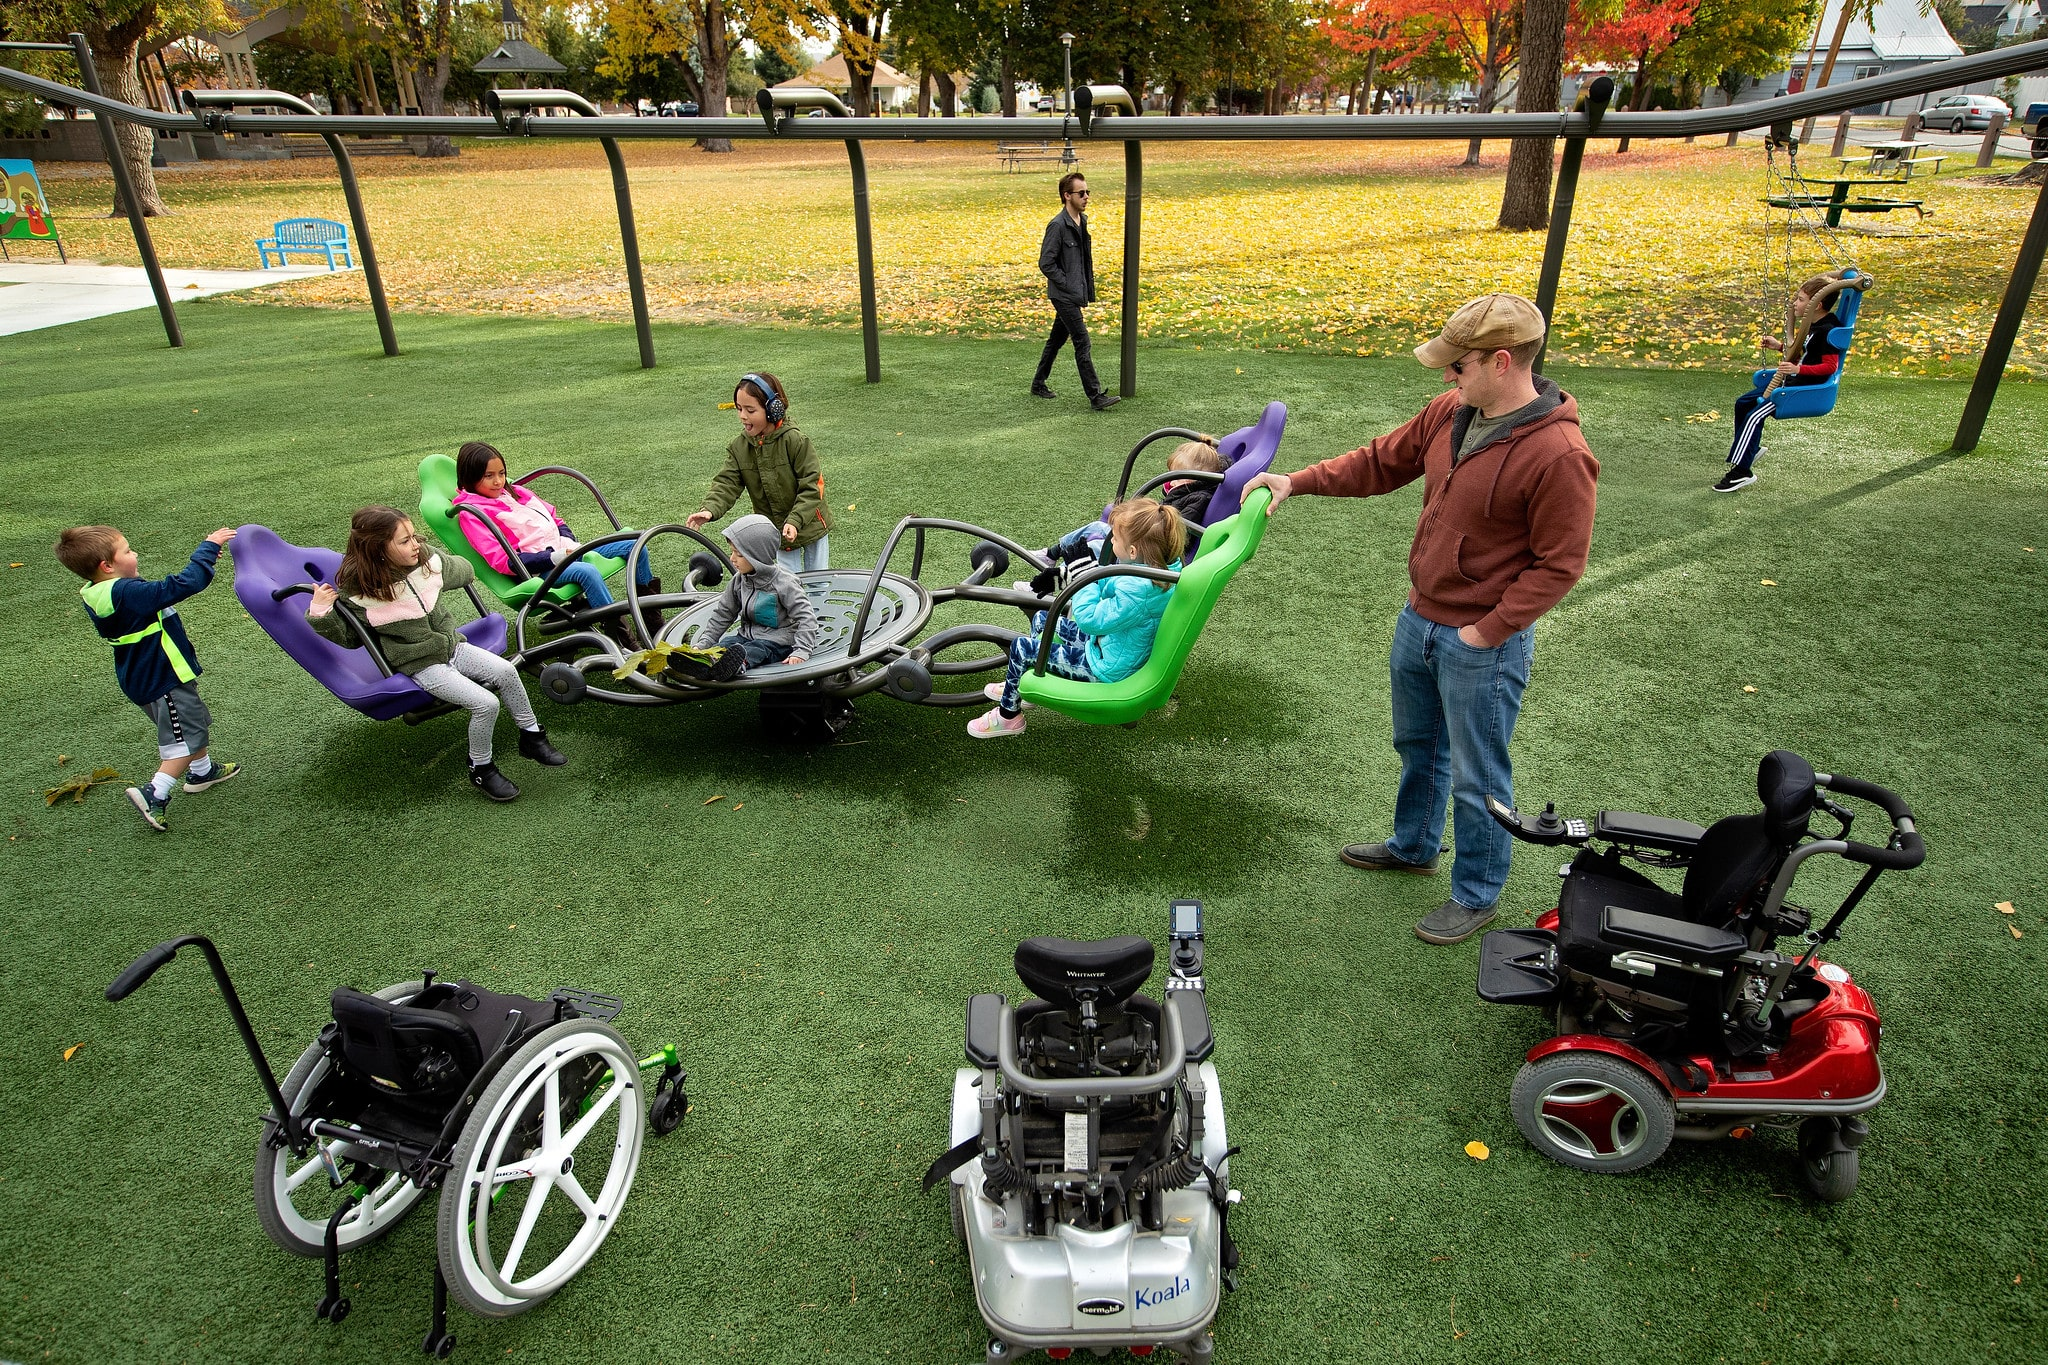 Group of children playing at an outdoor inclusive play ground/park.